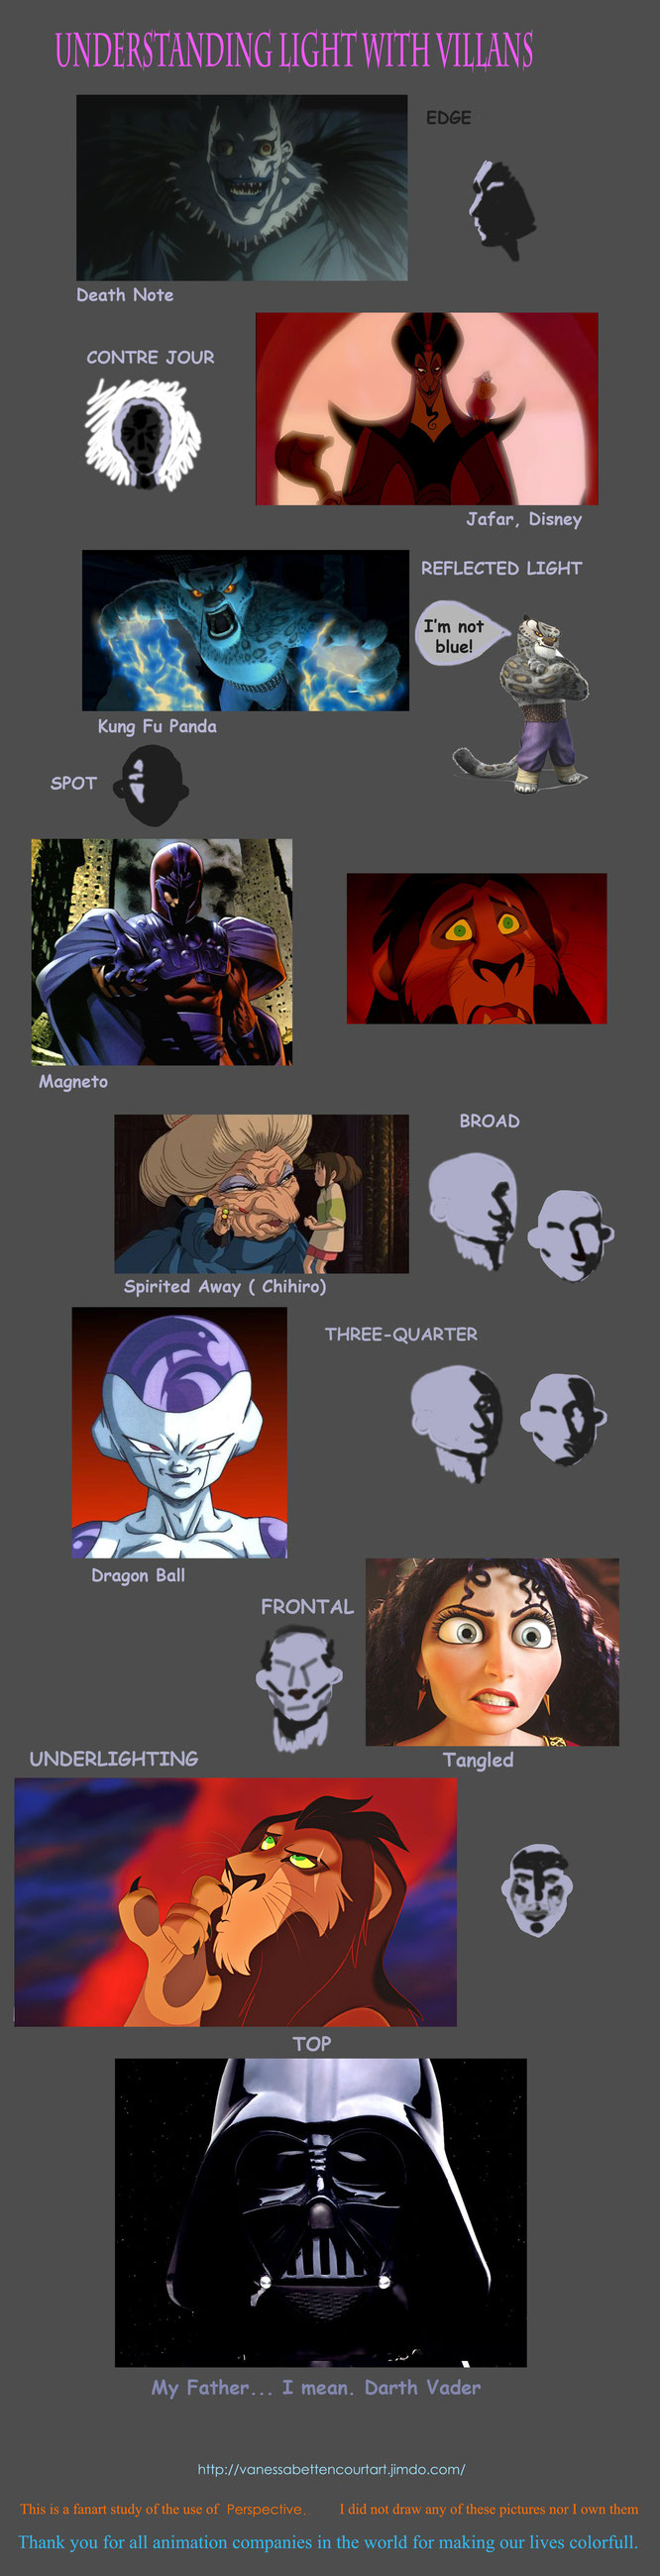 starwars best villains disney villains  light theory tutorial light pixarvillains  anime villains marvel villains